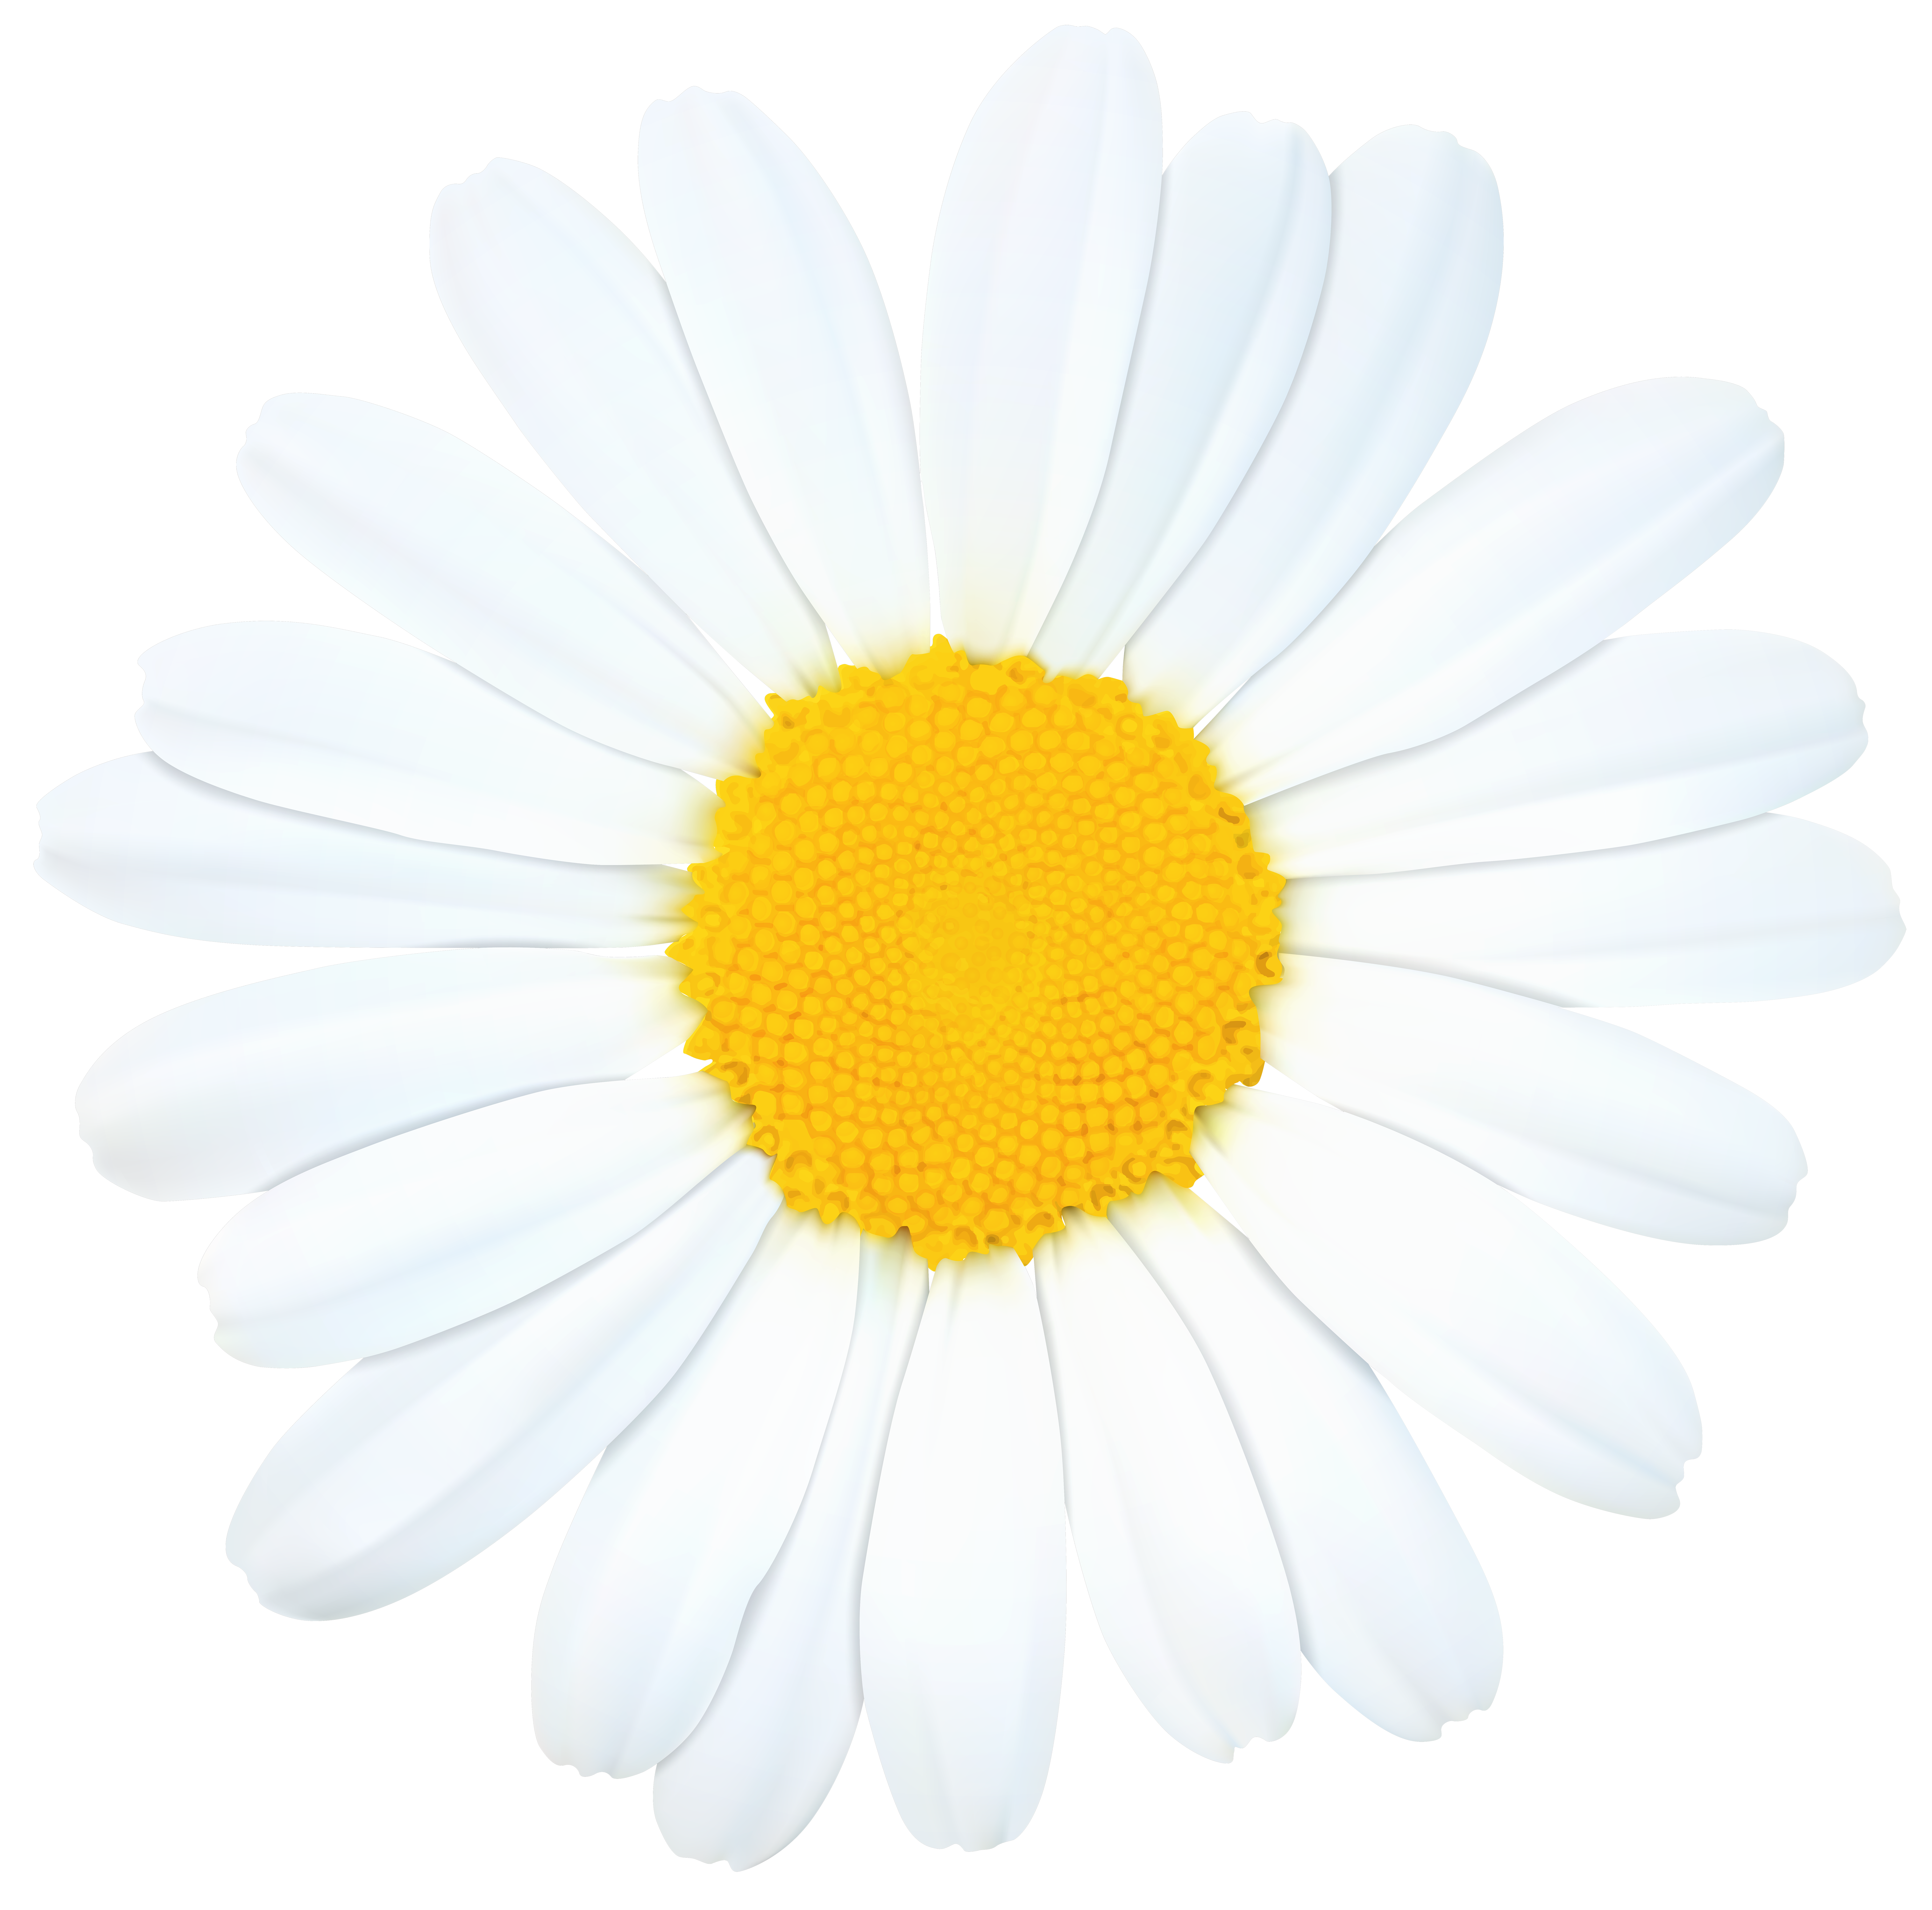 Daisy clipart png. Clip art image gallery